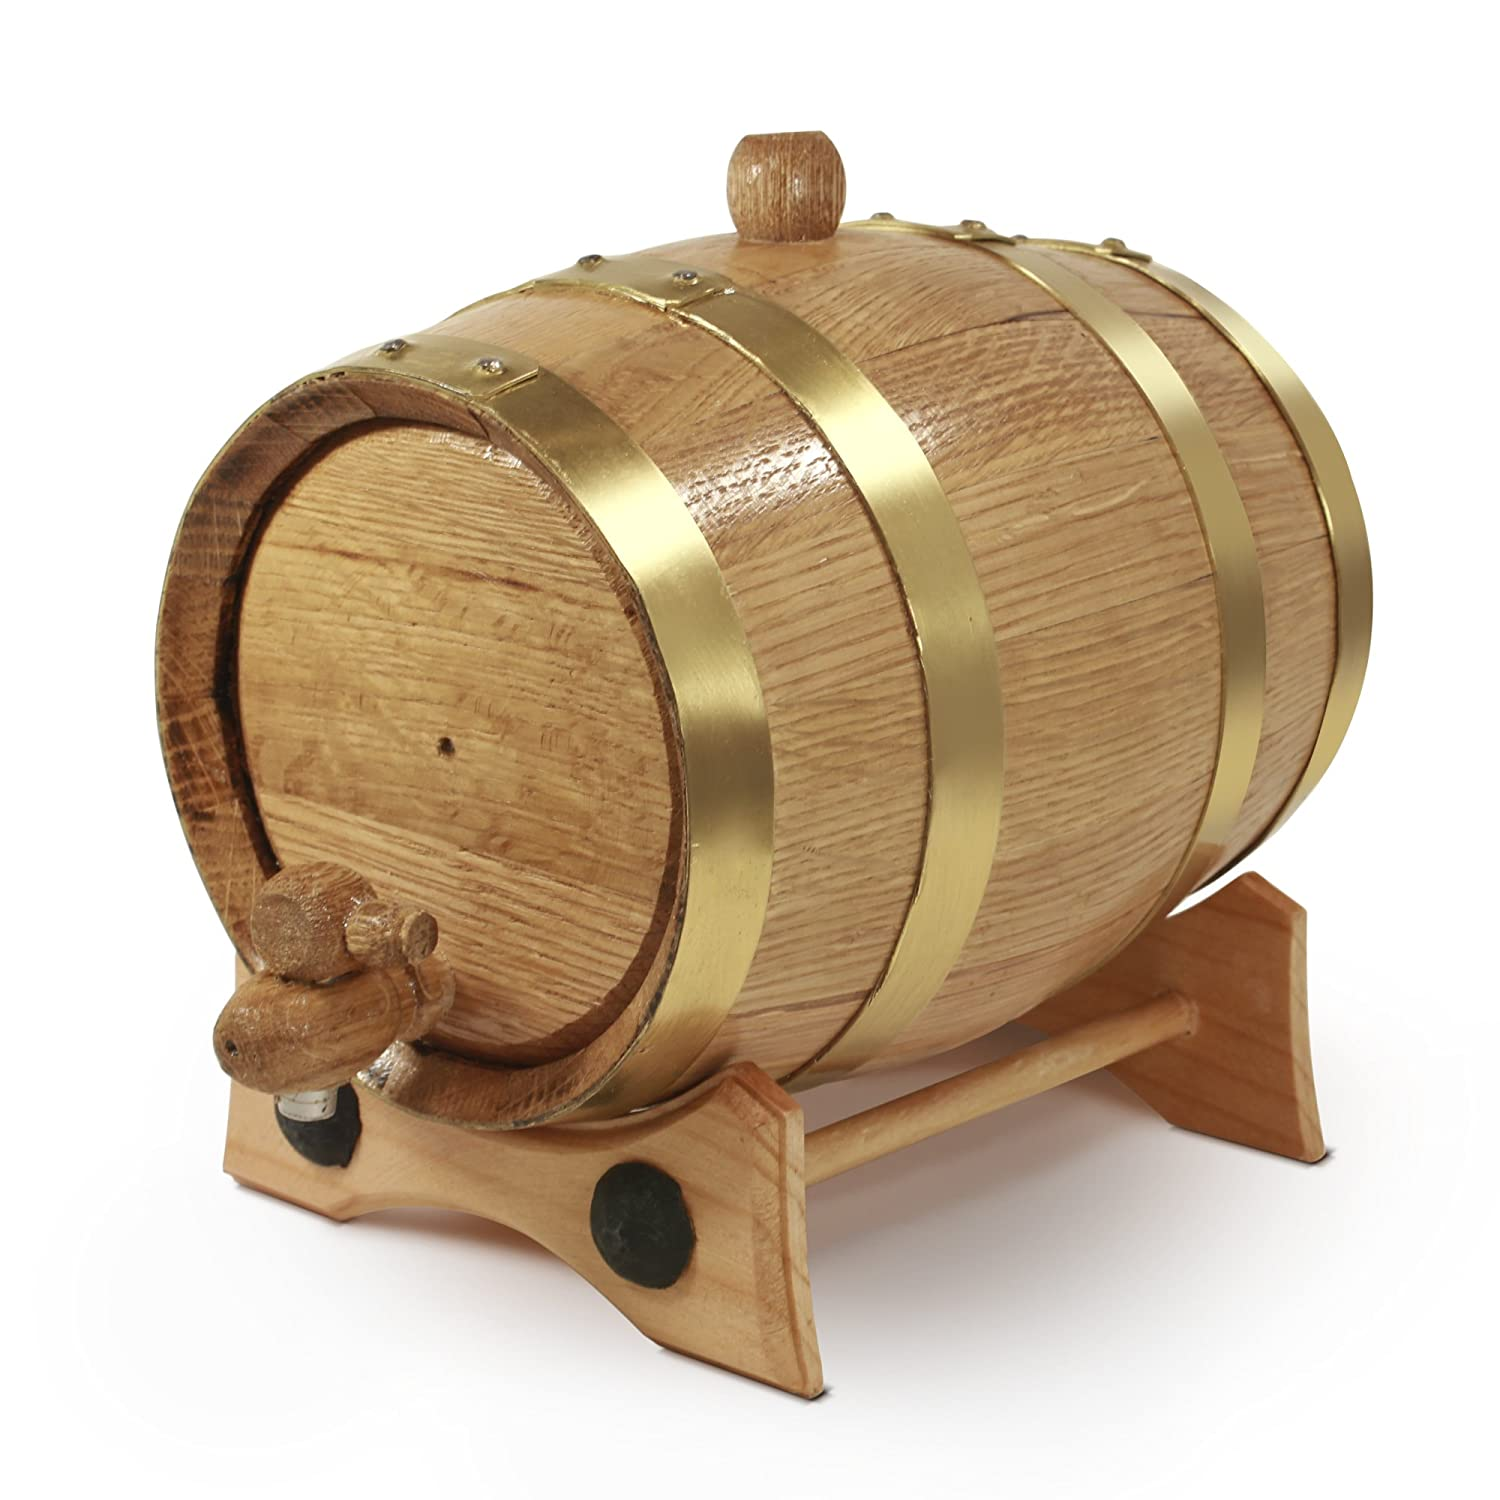 2 Liter Golden Oak Barrel - Brass Hoops | 30 page Aging Guide | Vinyl Barrel Decals | Paper Funnel | No Leaks Guarantee by Golden Oak Barrel B01HMXFMXC 2 Liter|ブラス ブラス 2 Liter